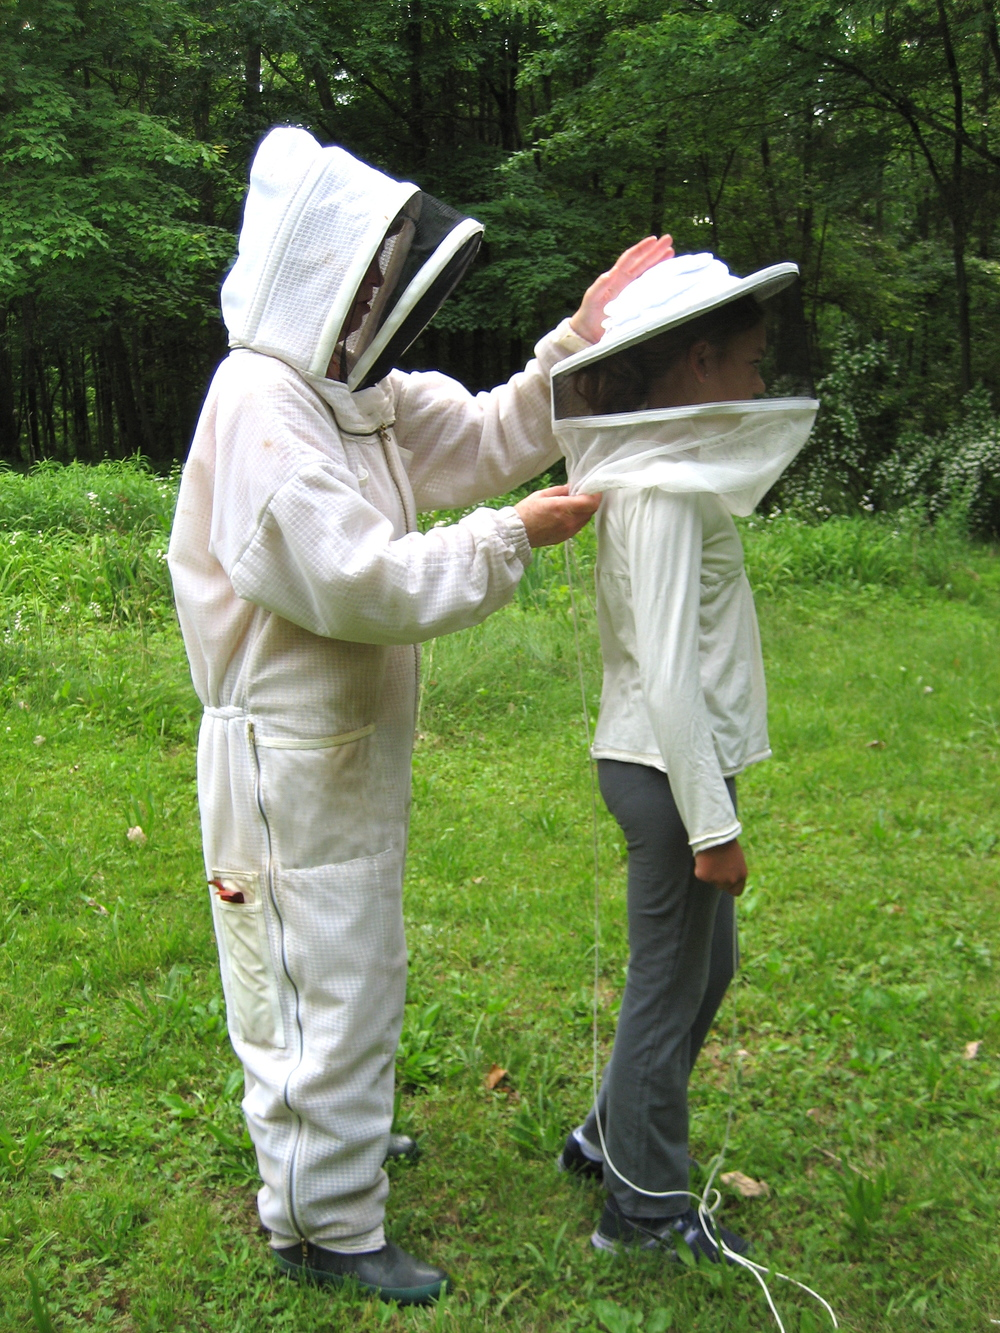 Laura in her beekeeper suit helping Sam to get her veil on.